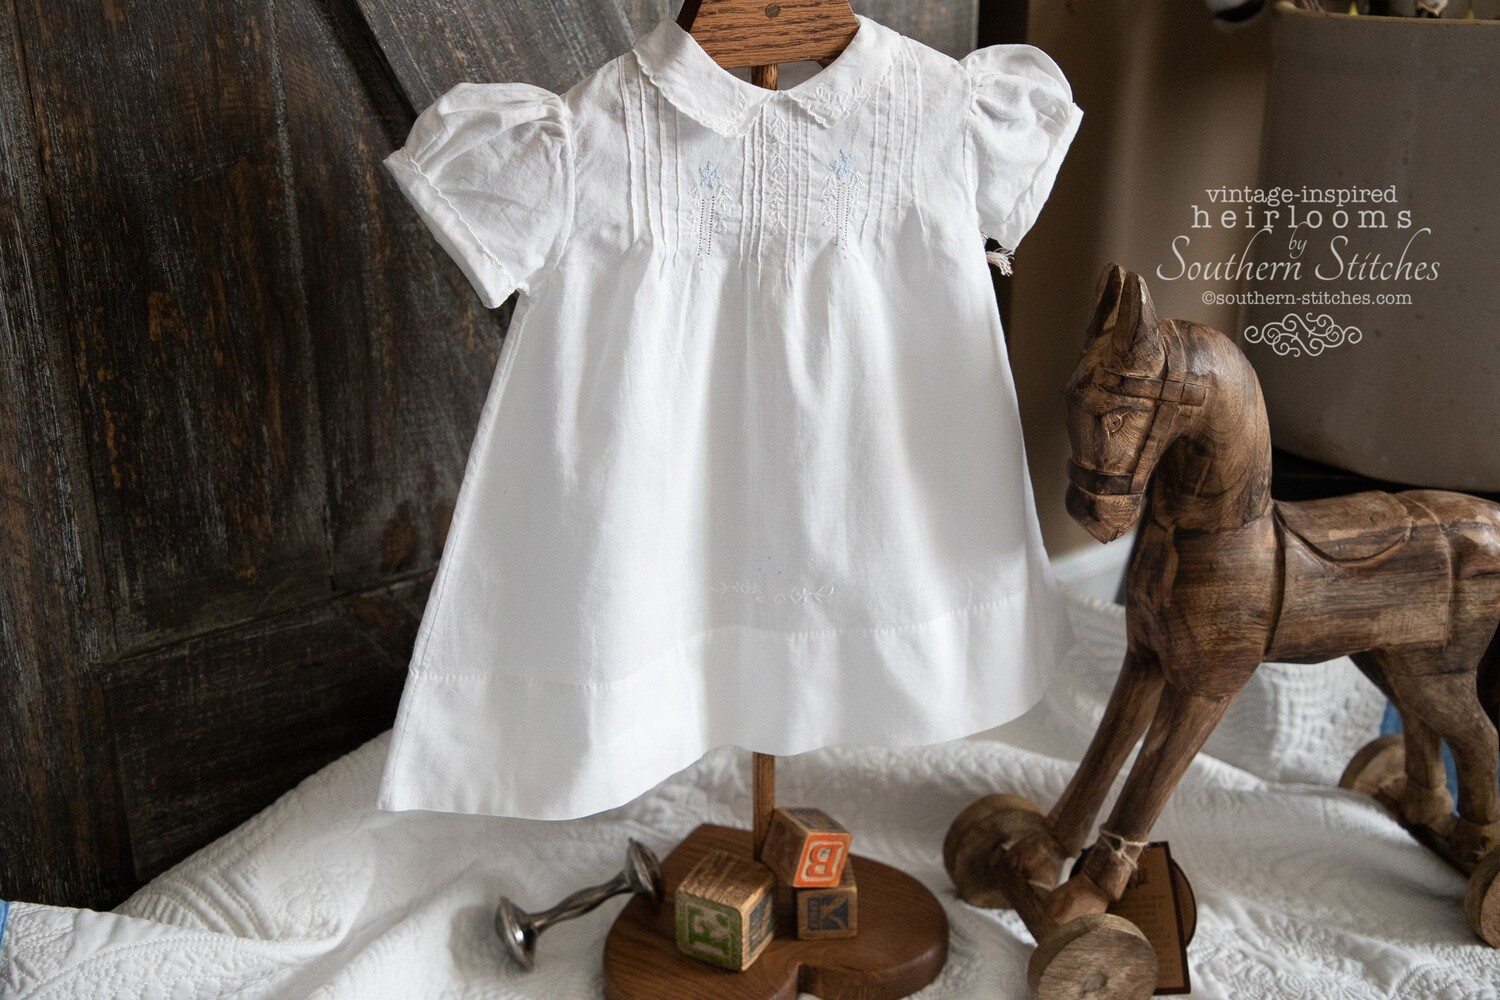 Vintage White with Blue Embroidery Dress